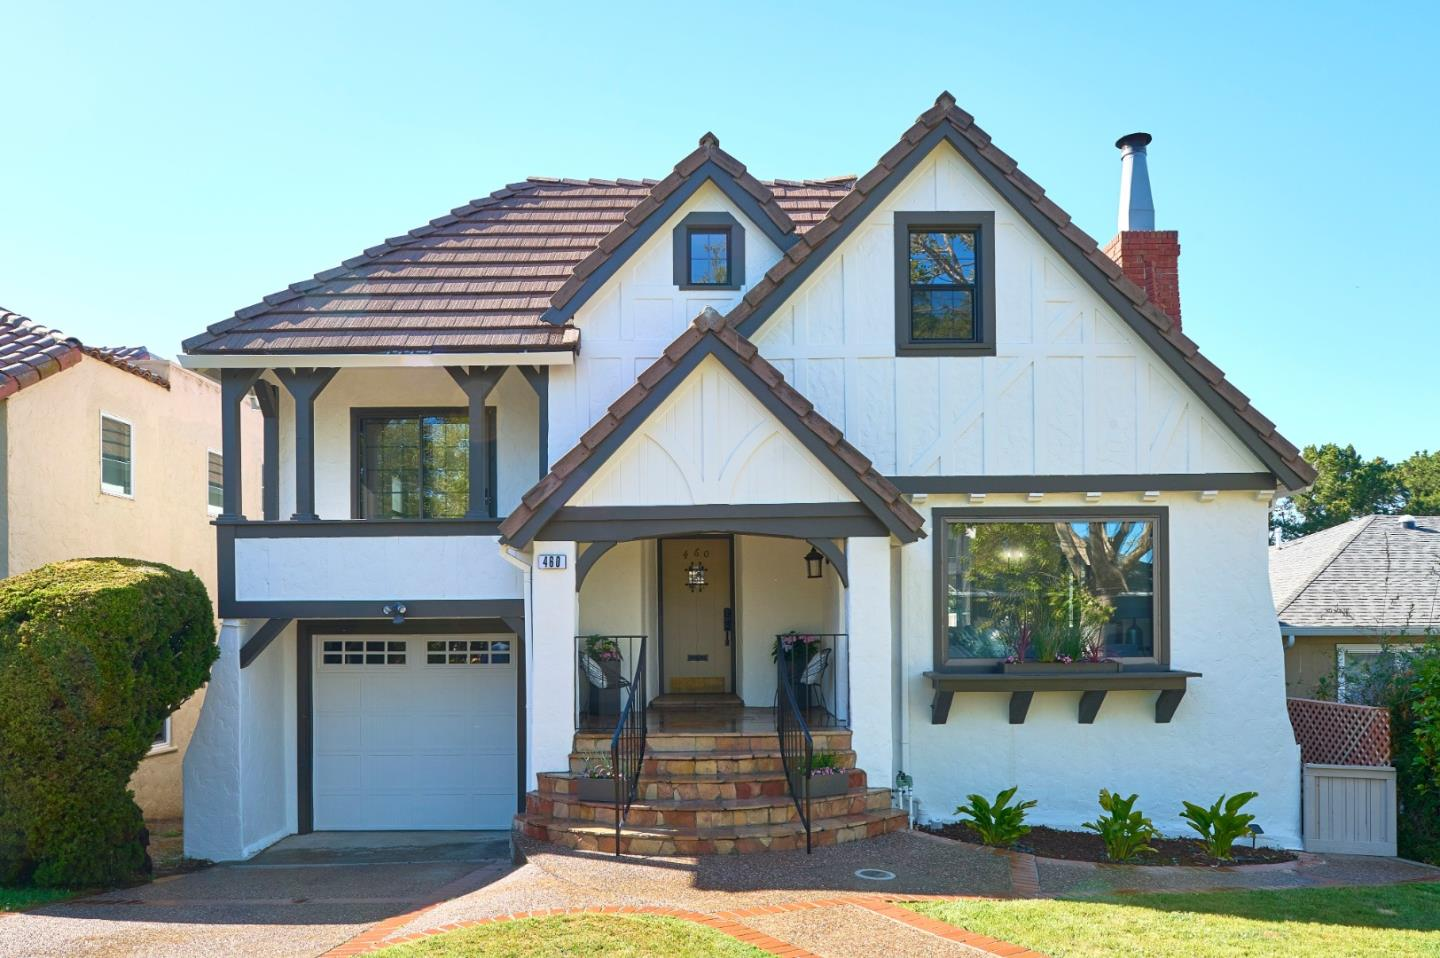 This Gorgeous Modern Tudor style home has a HUGE usable yard on a Quiet street adjacent to Central Park/playground and currently reconstructing Amazing New Community Center.  With multiple levels, it's ideal for those with a large growing family and for those of us still working from home with private offices for your Zoom meetings.  Current owners fully permitted the downstairs family room with two additional bedrooms/offices.  Move in condition, granite counter tops, stainless steel appliances, beautiful REAL hardwood floors, Character galore, large decking system with views to the North, fruit bearing trees, grassy backyard which has a private gate directly to the City Park.  Walking distance to library, downtown shopping, post office, restaurants, schools and more.    Coveted school district which include:  Spring Valley Elementary, Taylor Middle, and Mills High.  Go to http://www.460hazel.com for more photos, 3D tour, and video.  https://vimeo.com/559548668.